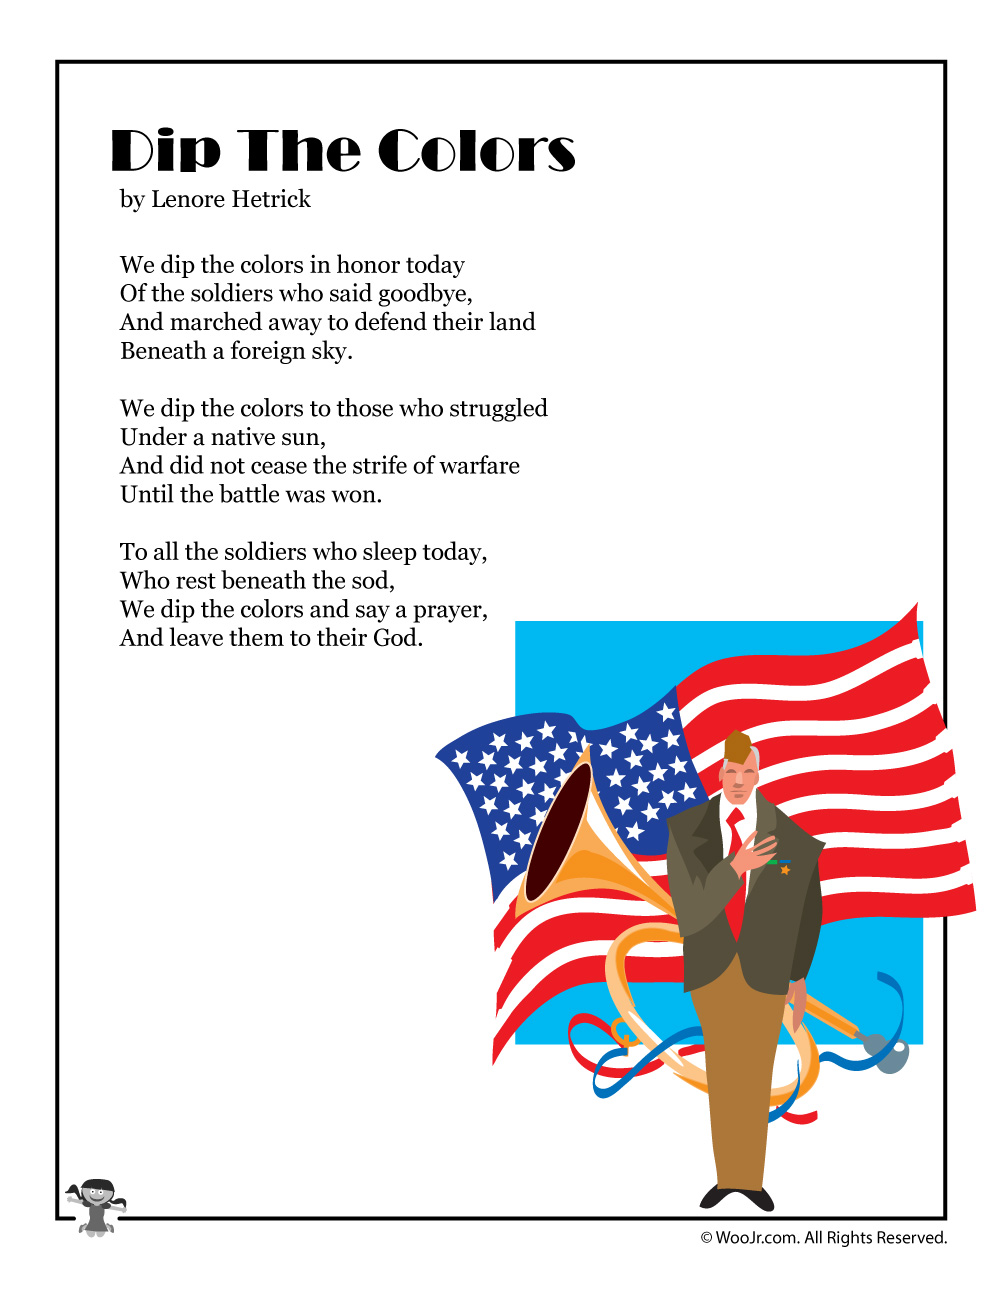 Dip the Color Famous Poems Memorial Day Image